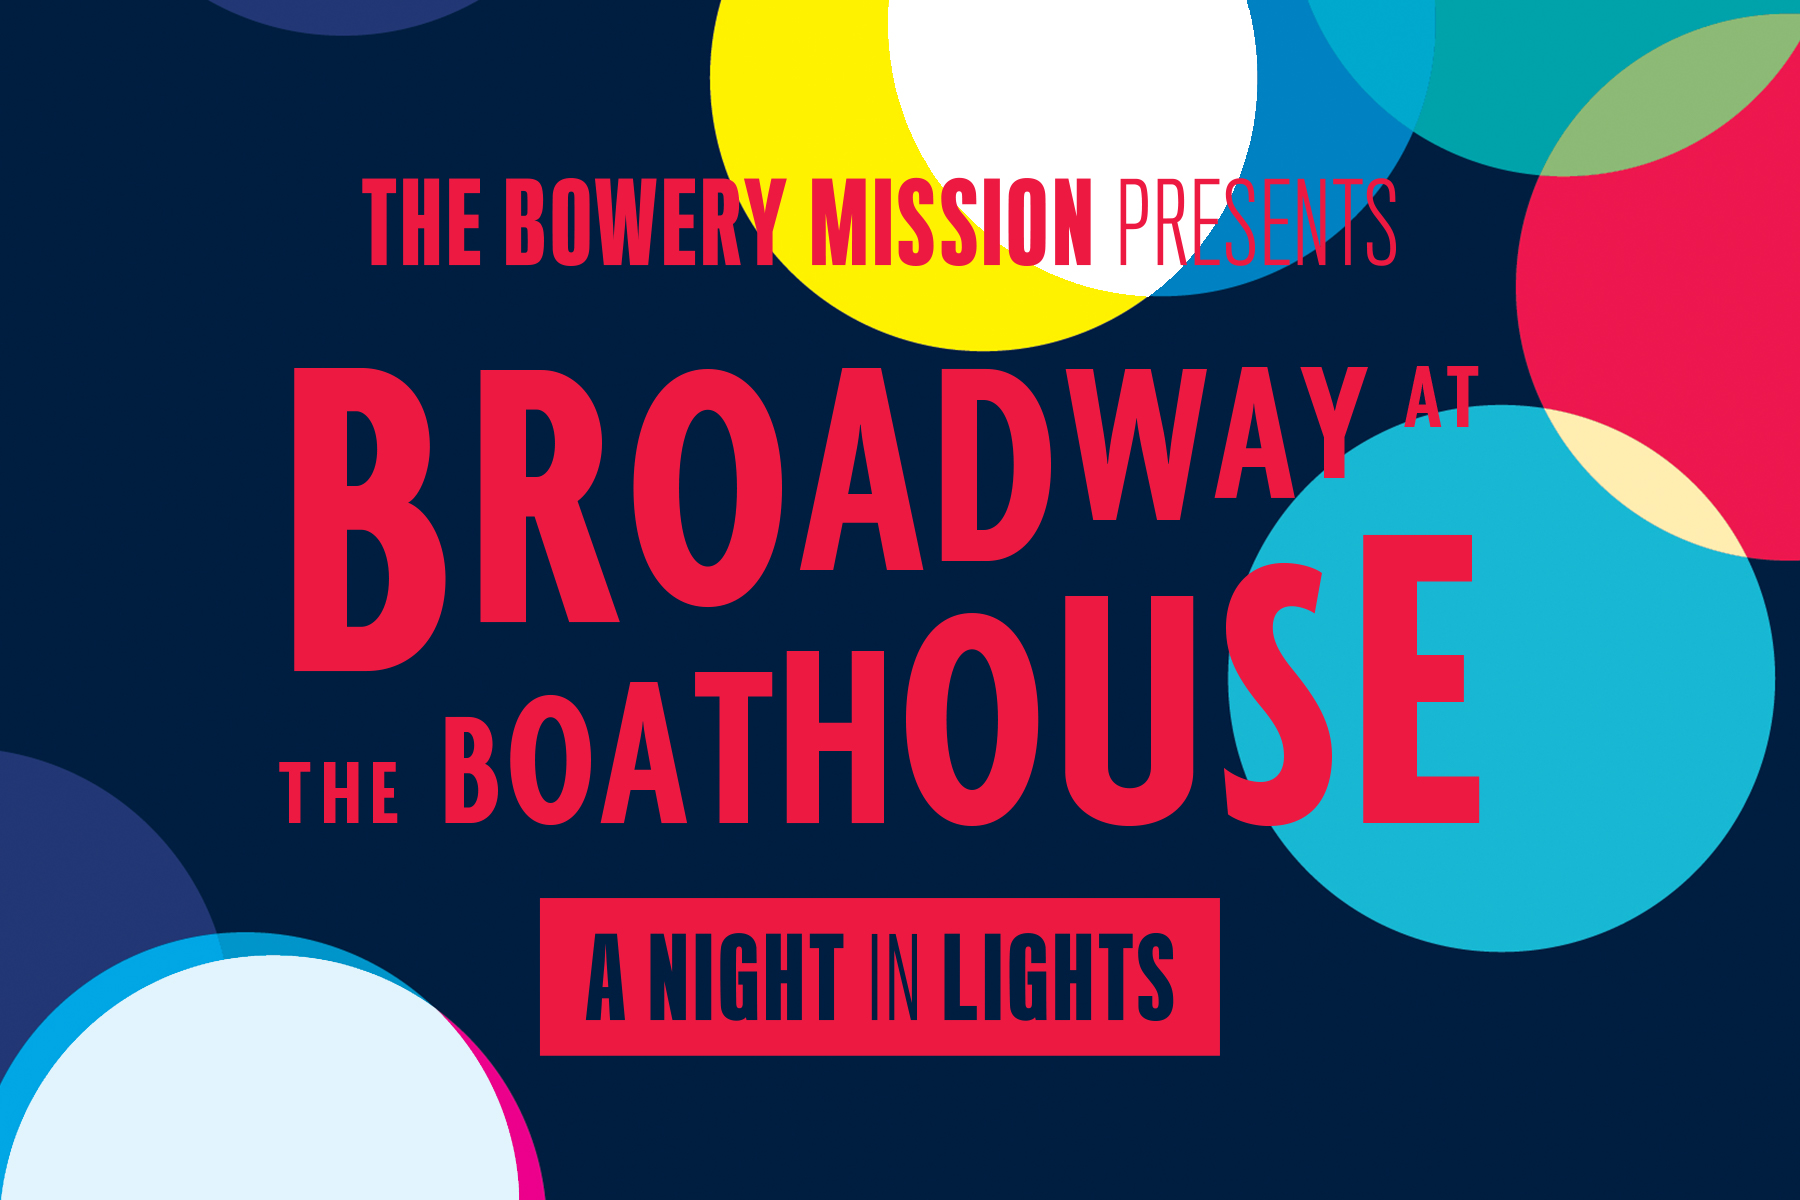 The Bowery Mission's 2019 Broadway at the Boathouse